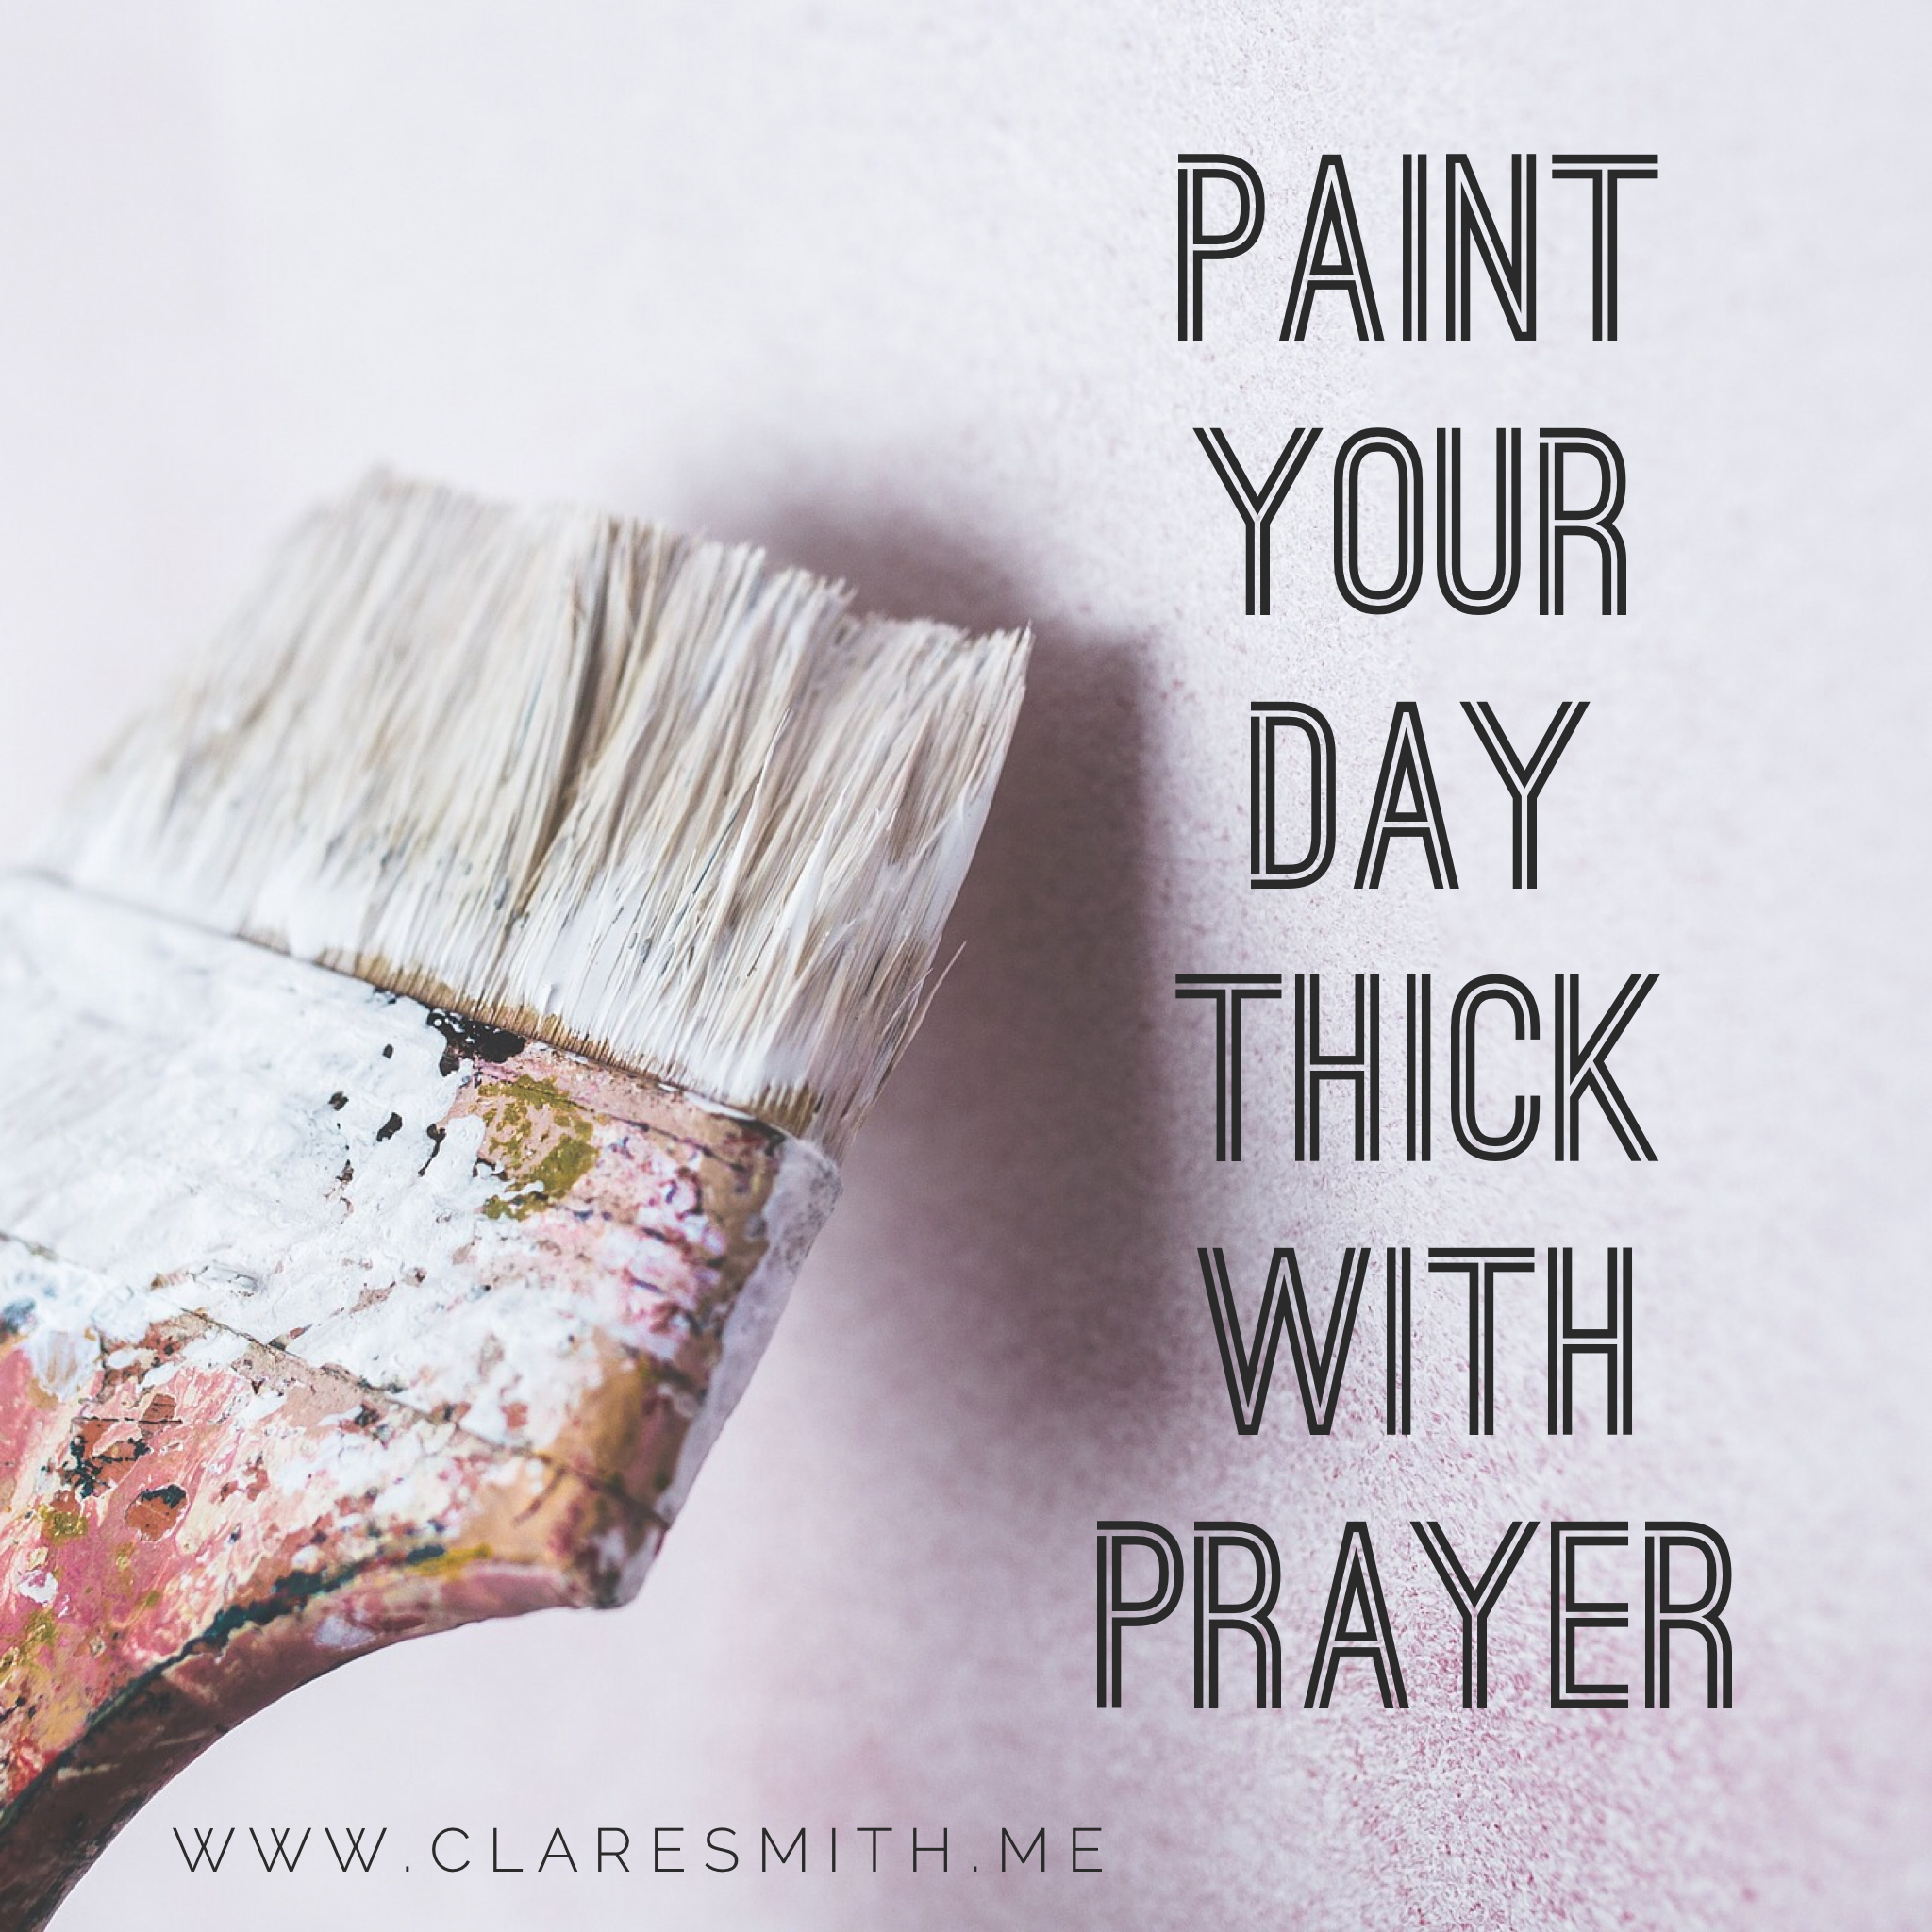 Paint your day thick with prayer : www.claresmith.me